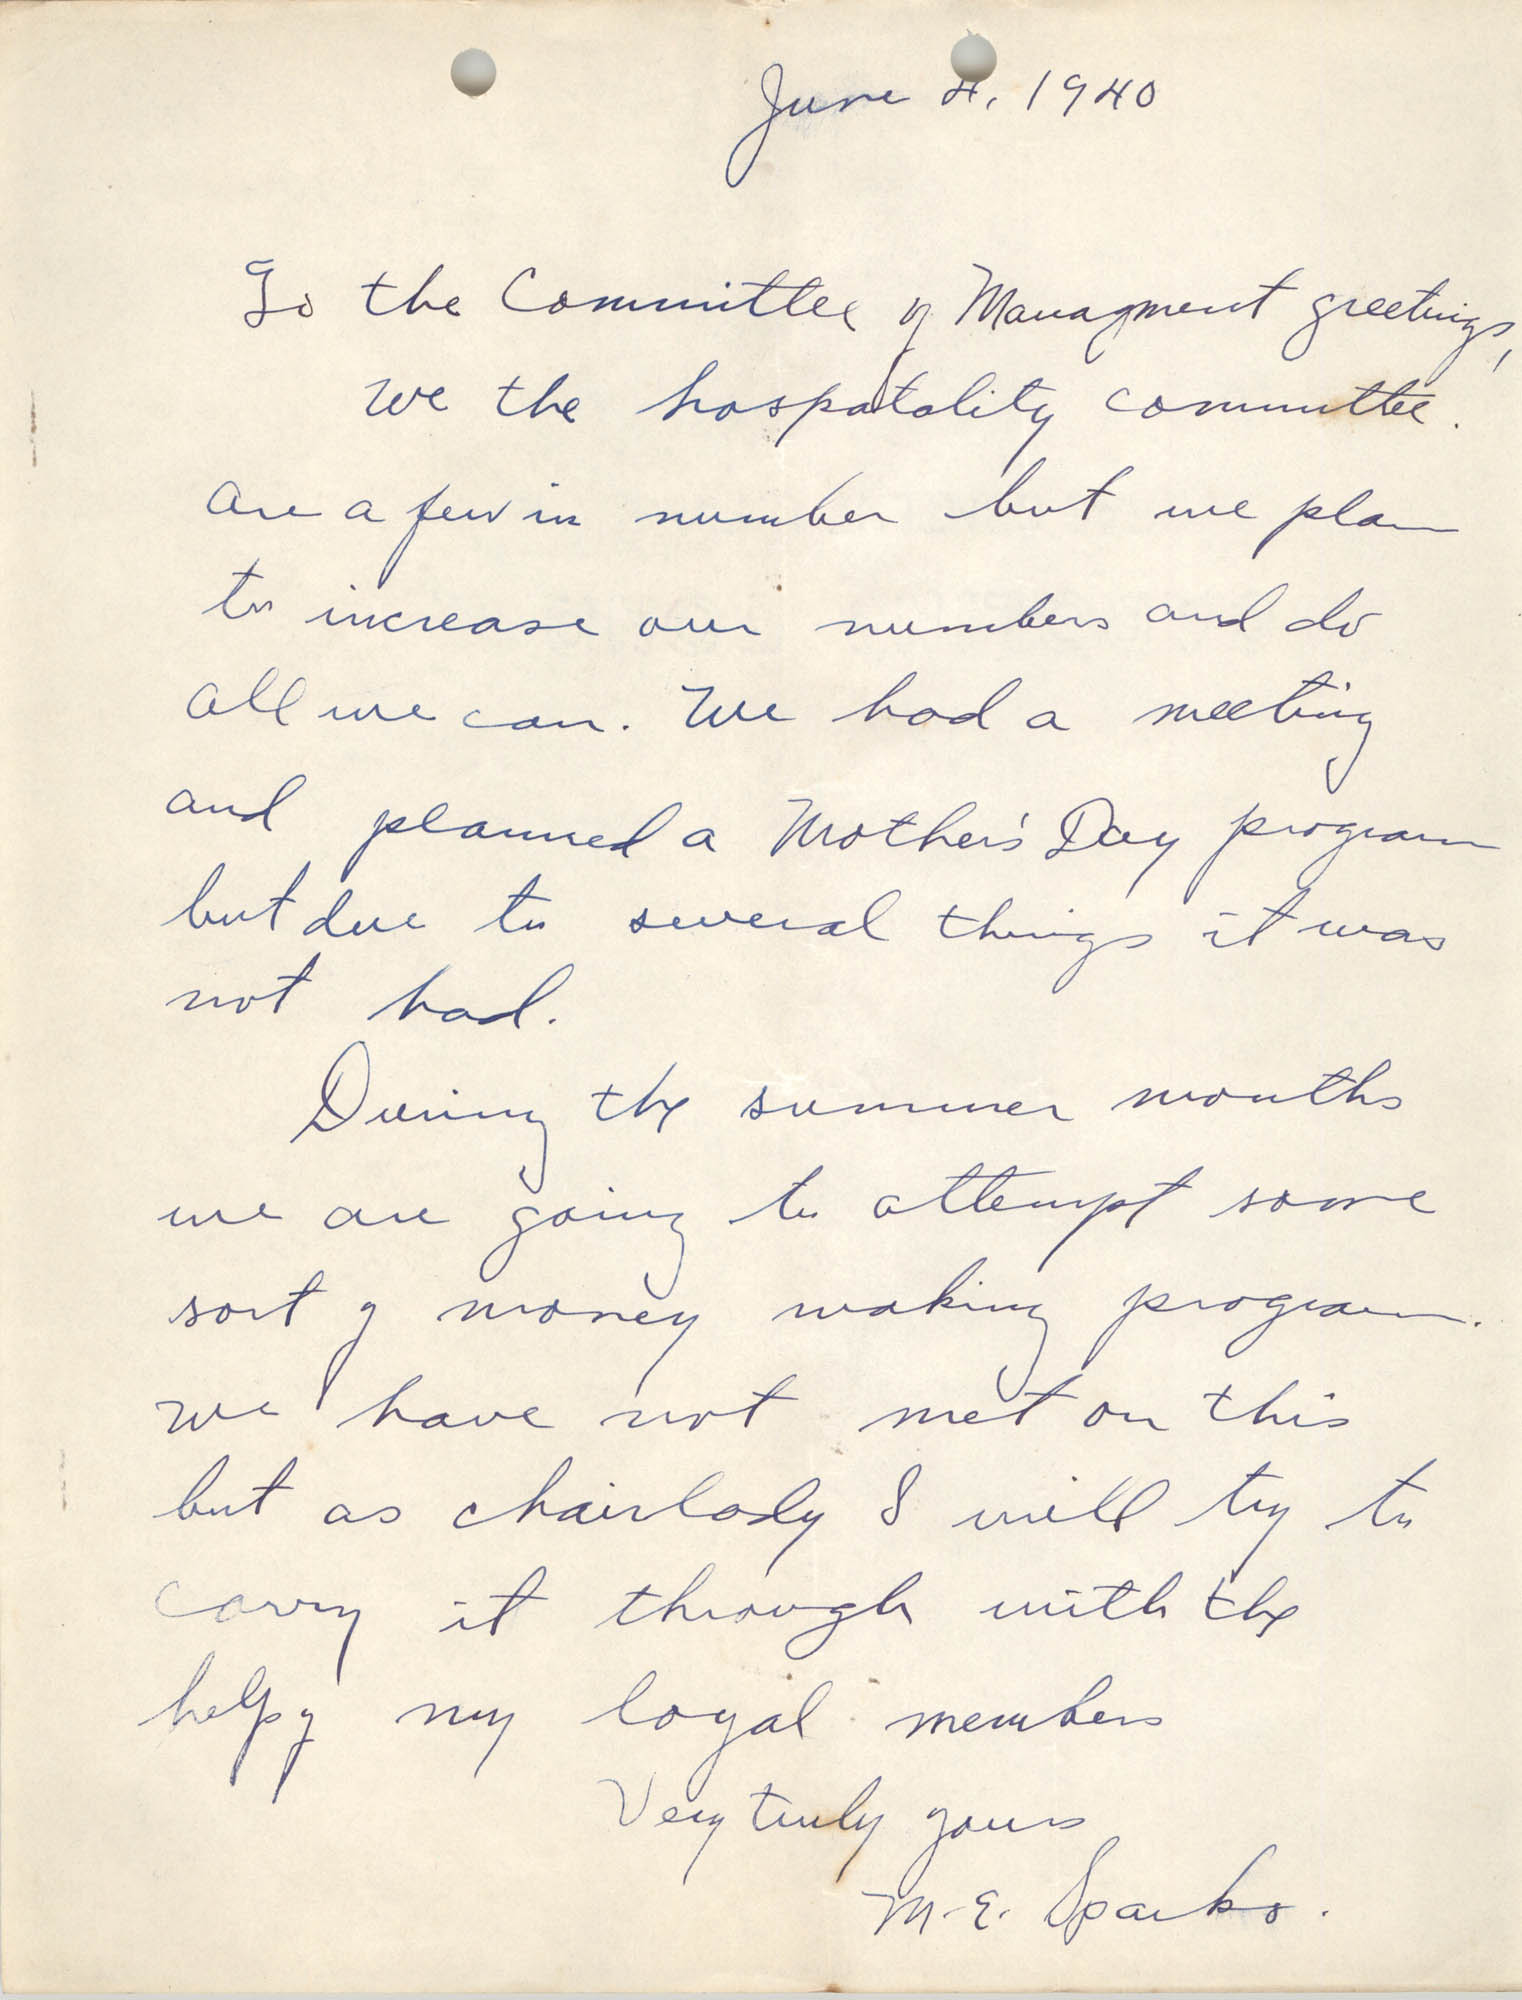 Letter from M. E. Sparks to Committee of Management, Coming Street Y.W.C.A., June 4, 1940